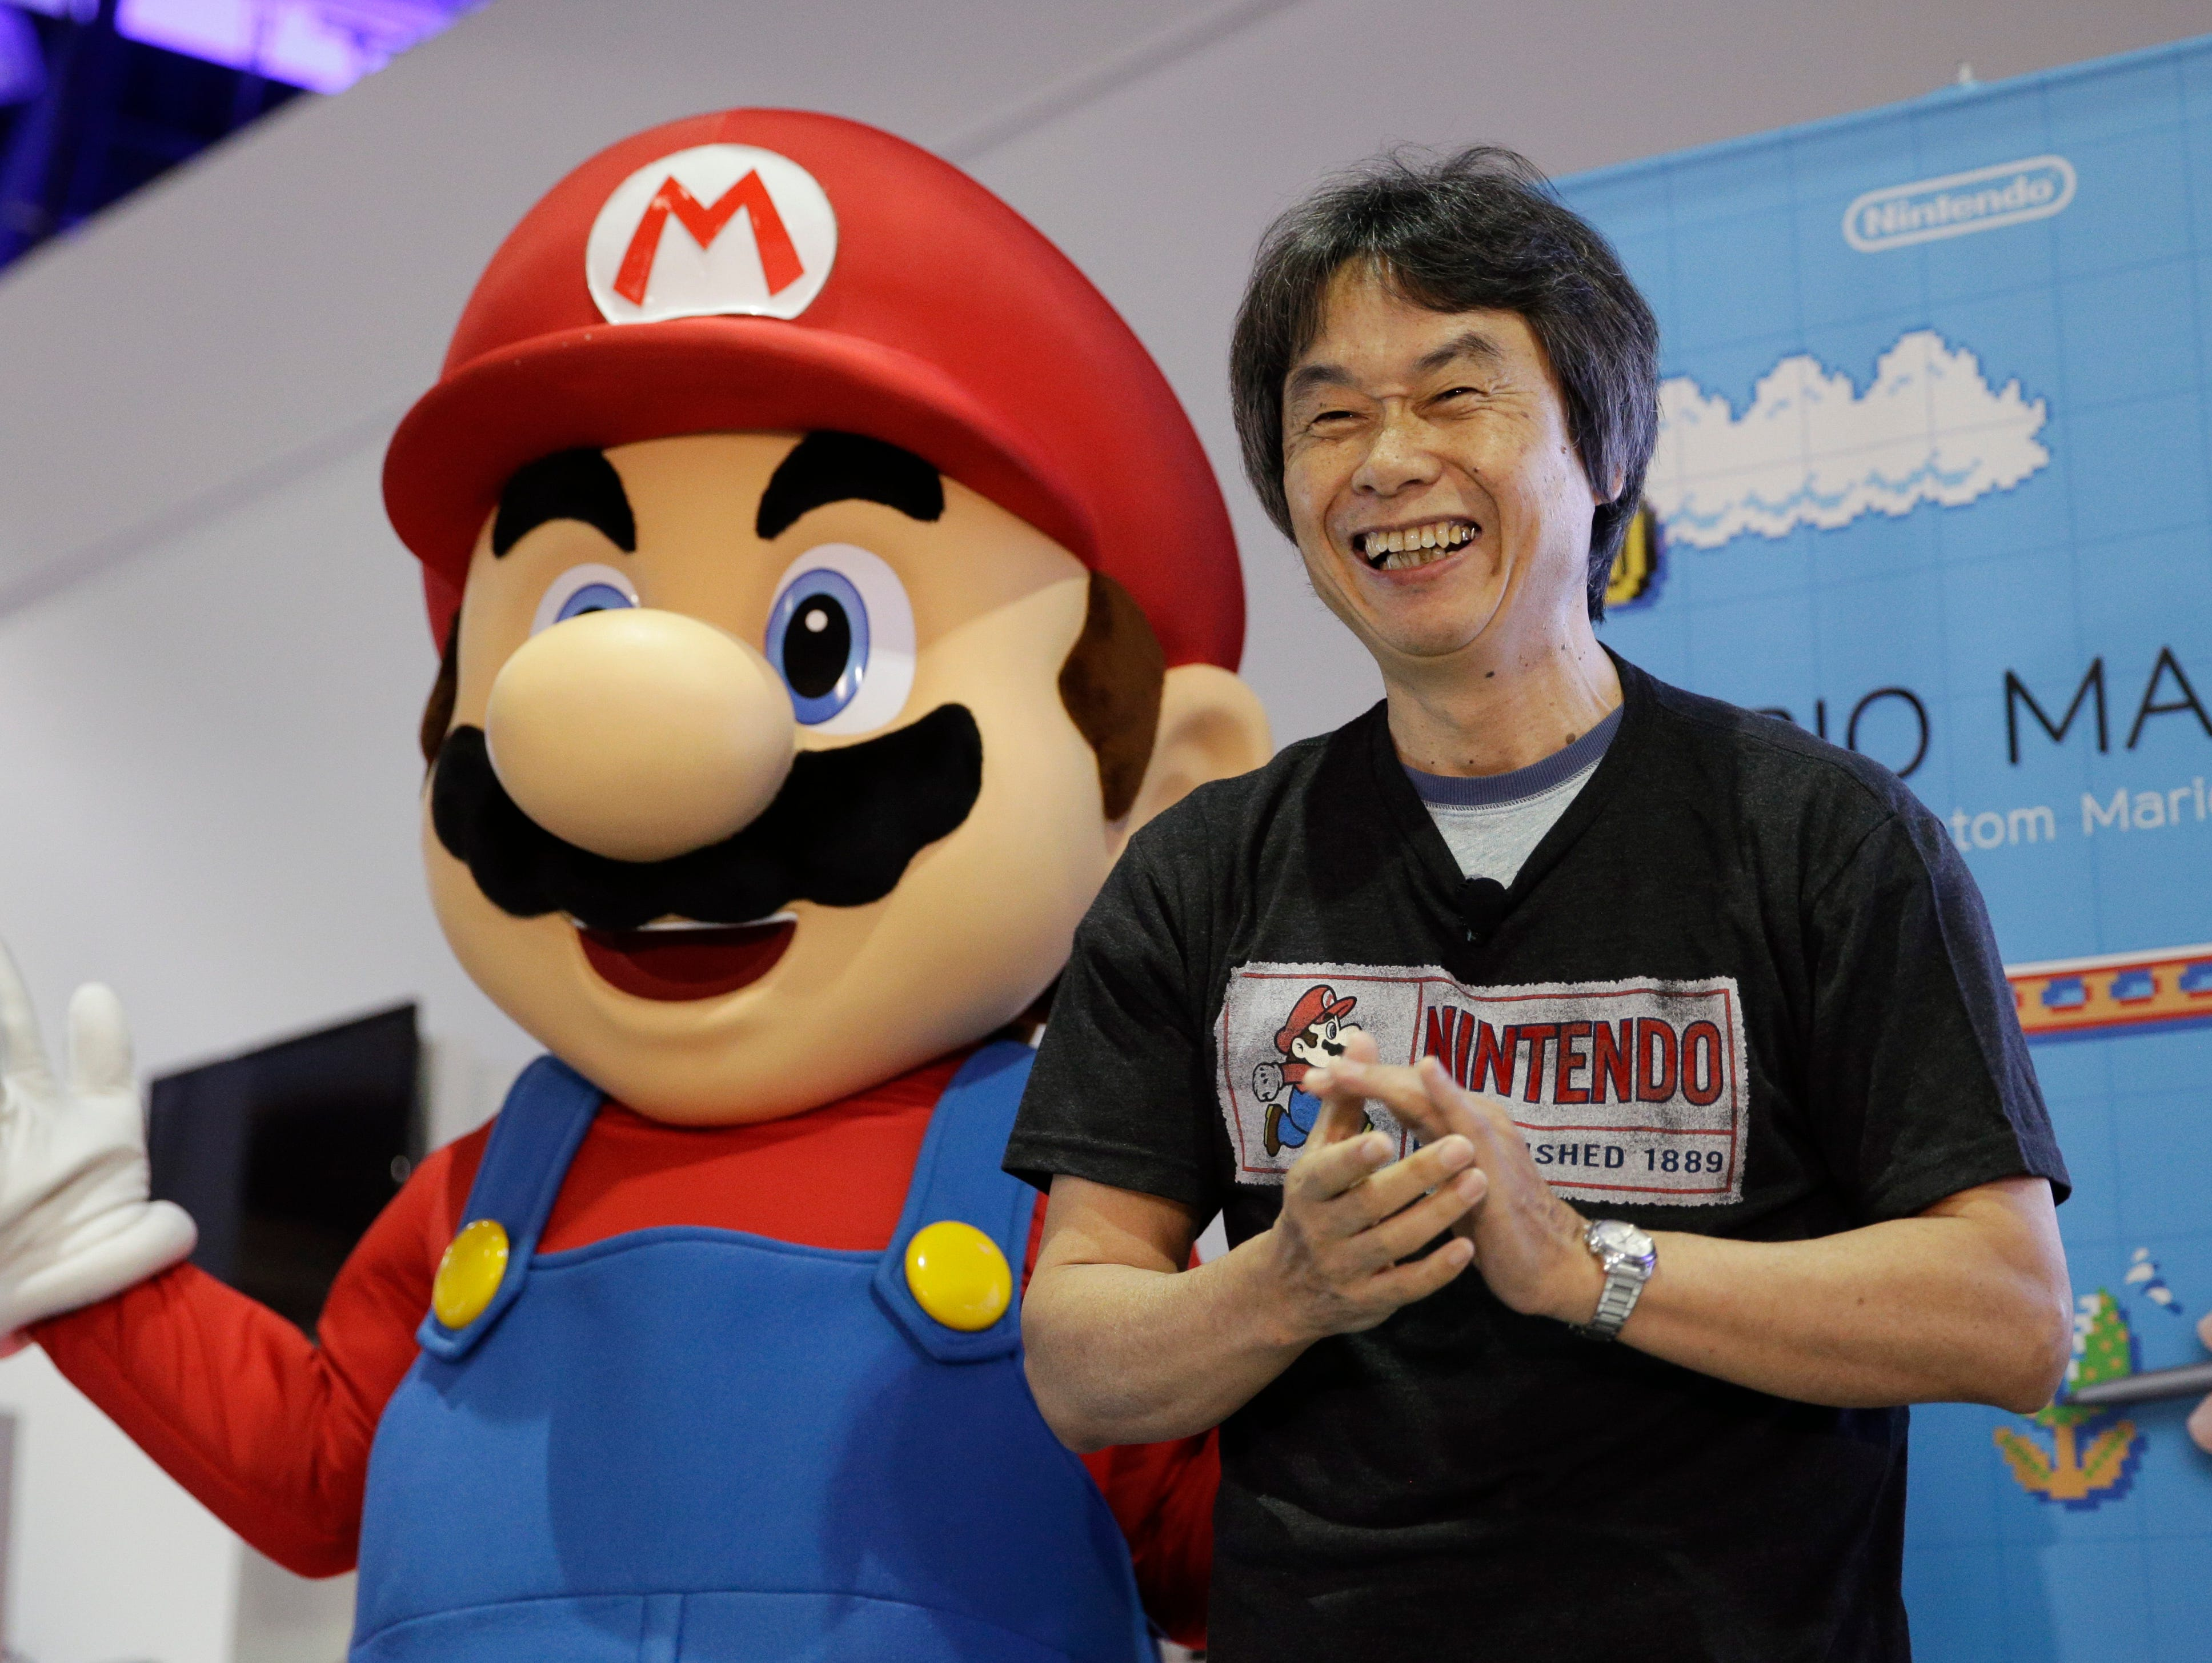 Japanese video game designer  introduces Nintendo's Mario Maker during a press event at the Nintendo booth at the Electronic Entertainment Expo.